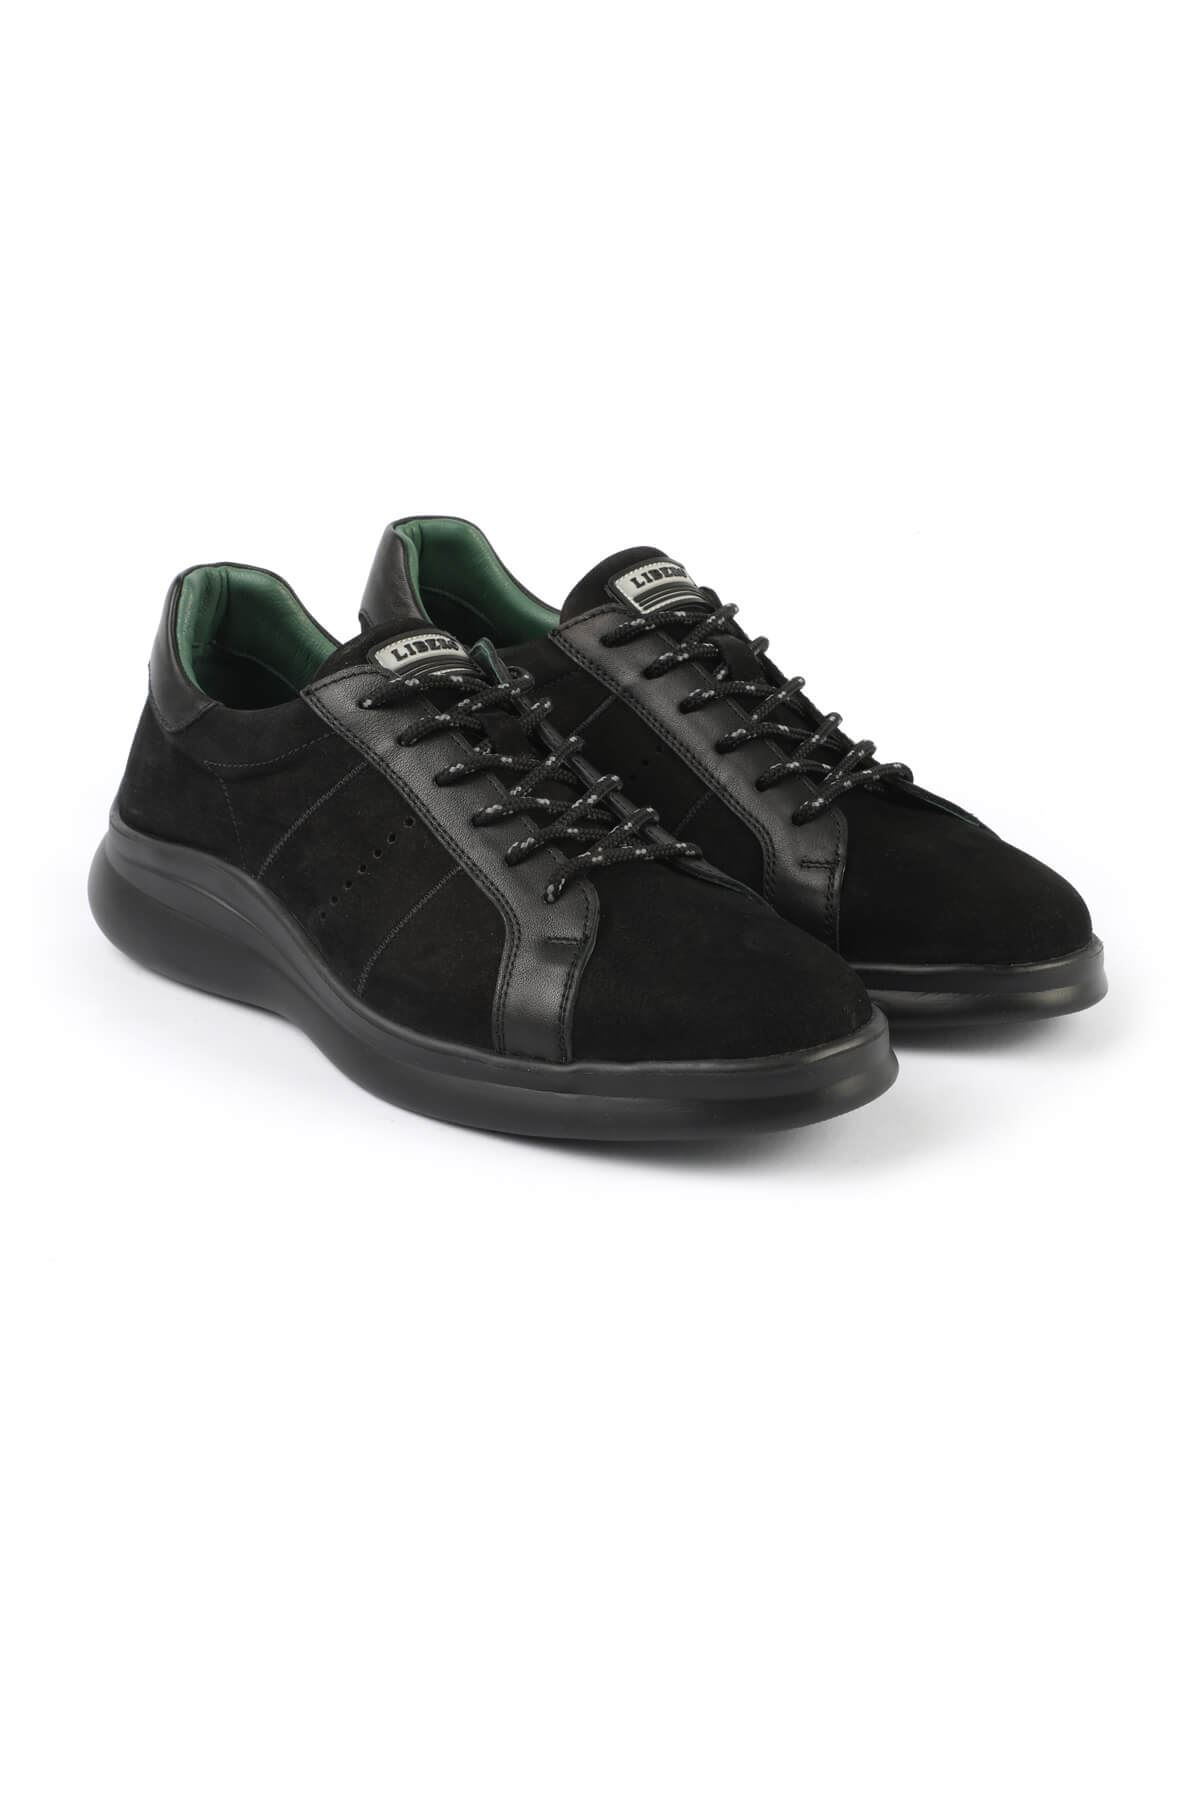 Libero 3176 Black Sports Shoes